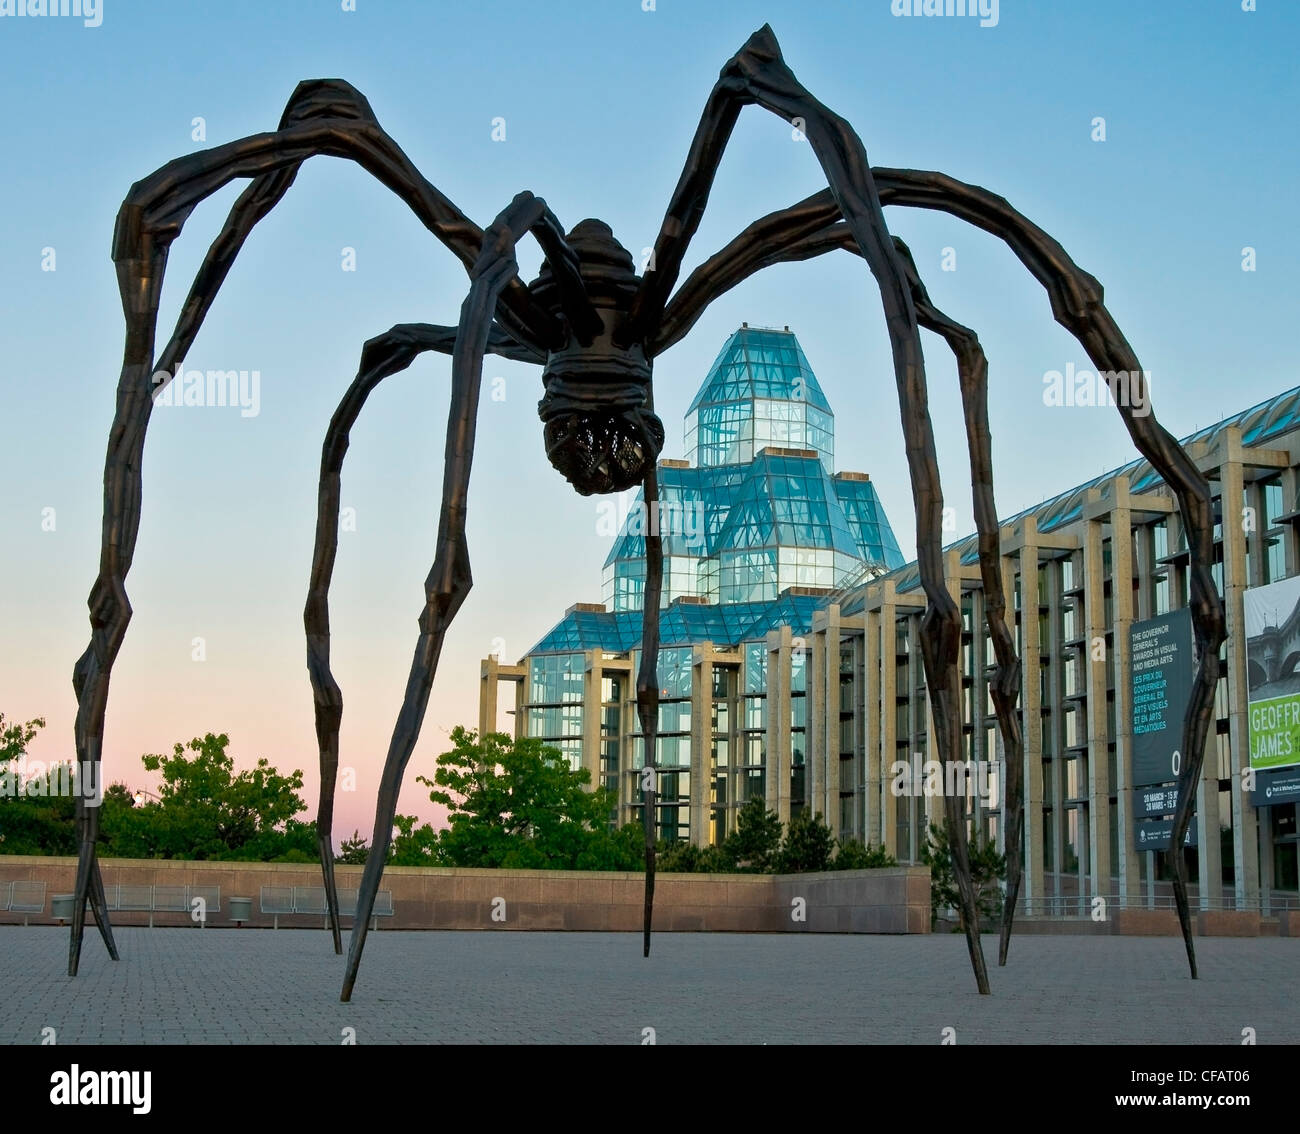 Garden Statues Ontario: Spider Sculpture Named Maman Outside The National Gallery